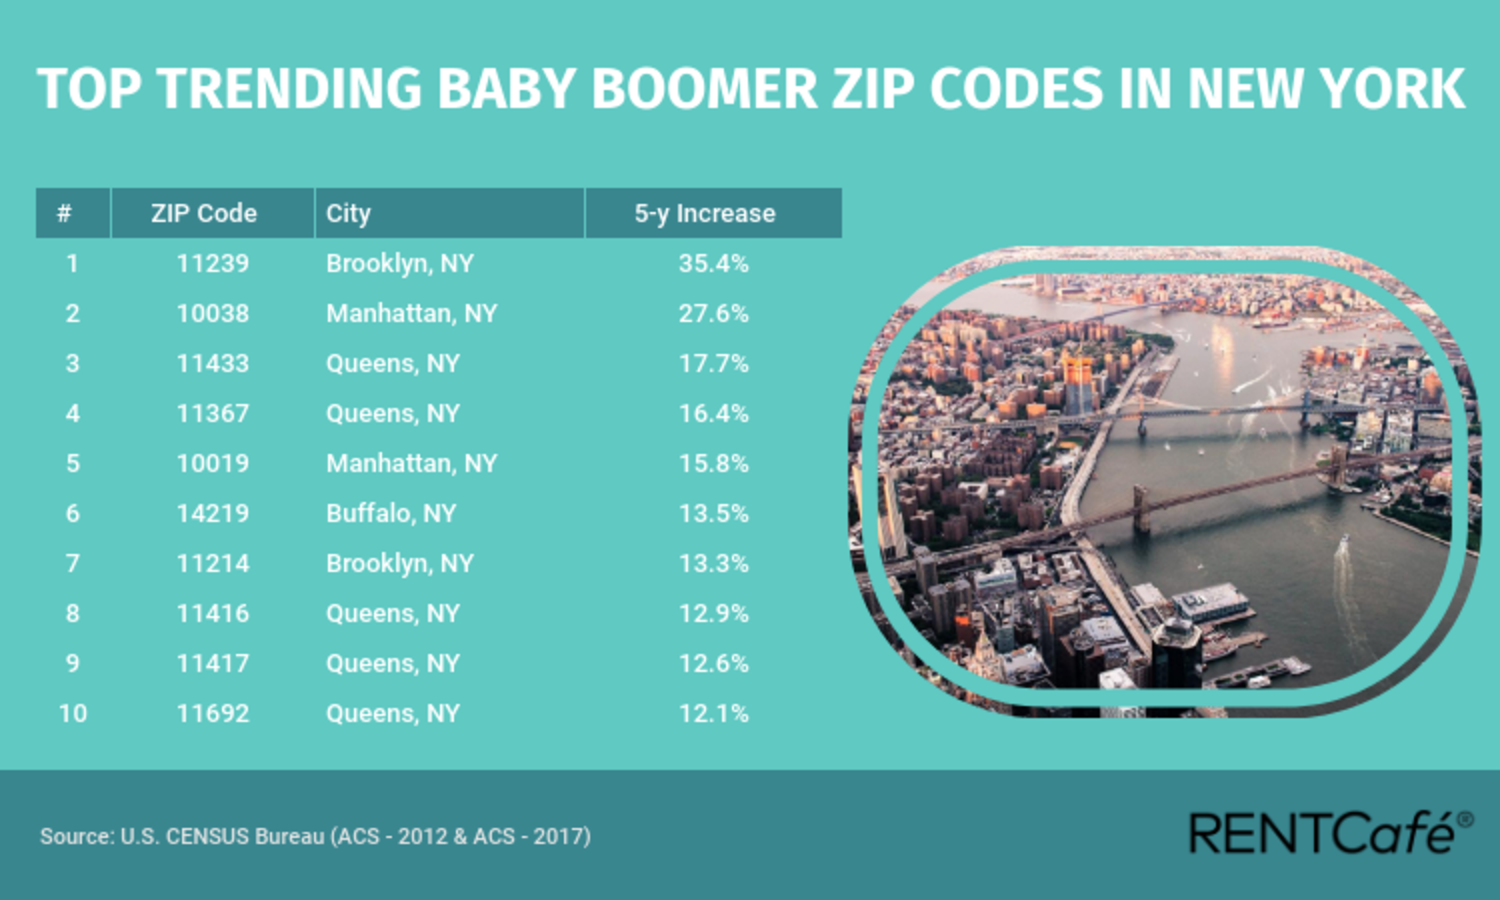 Top Trending Baby Boomer Zip Codes in New York